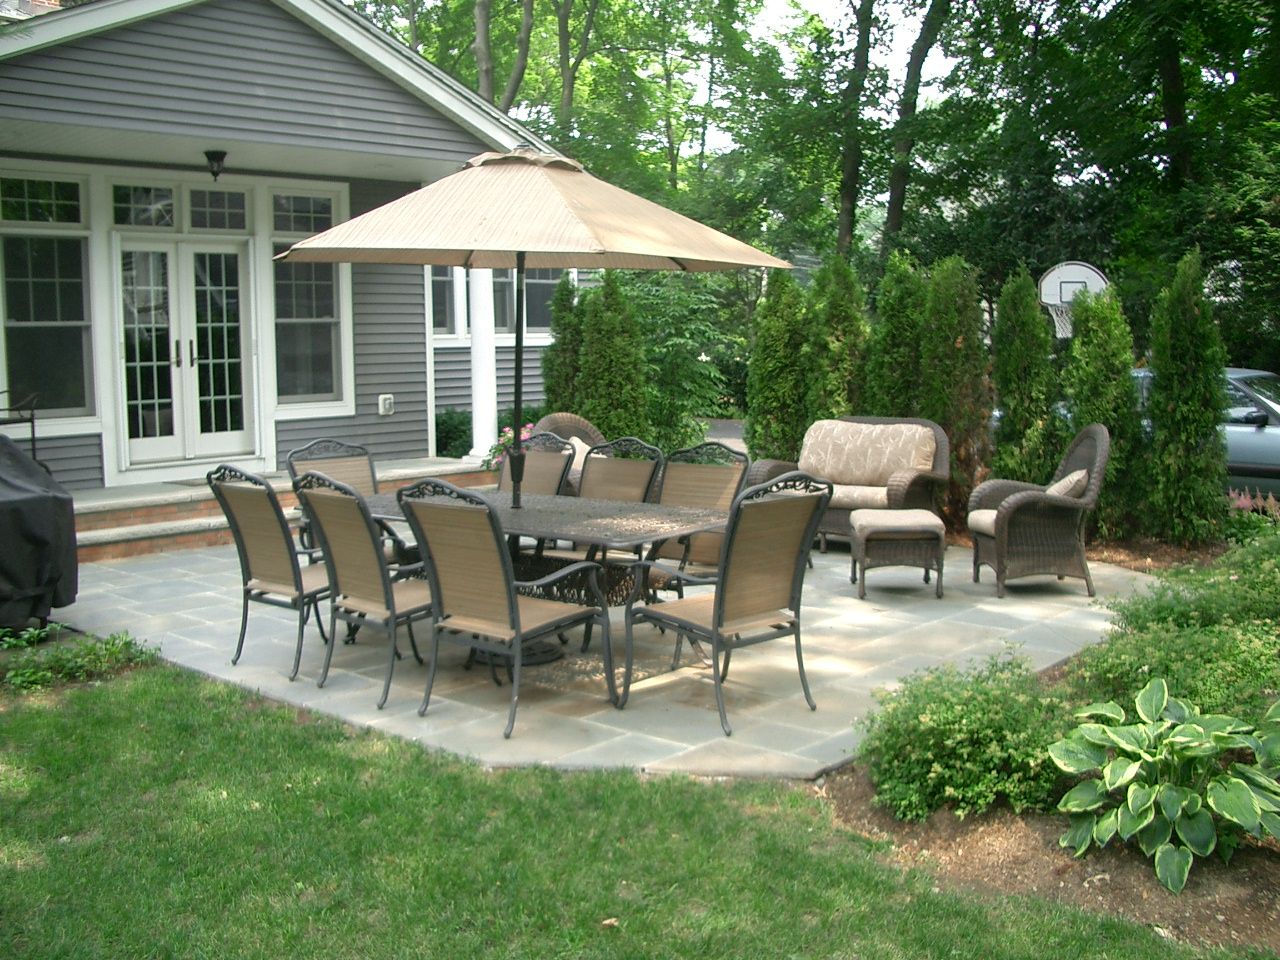 Merveilleux Bergen County Patio Design